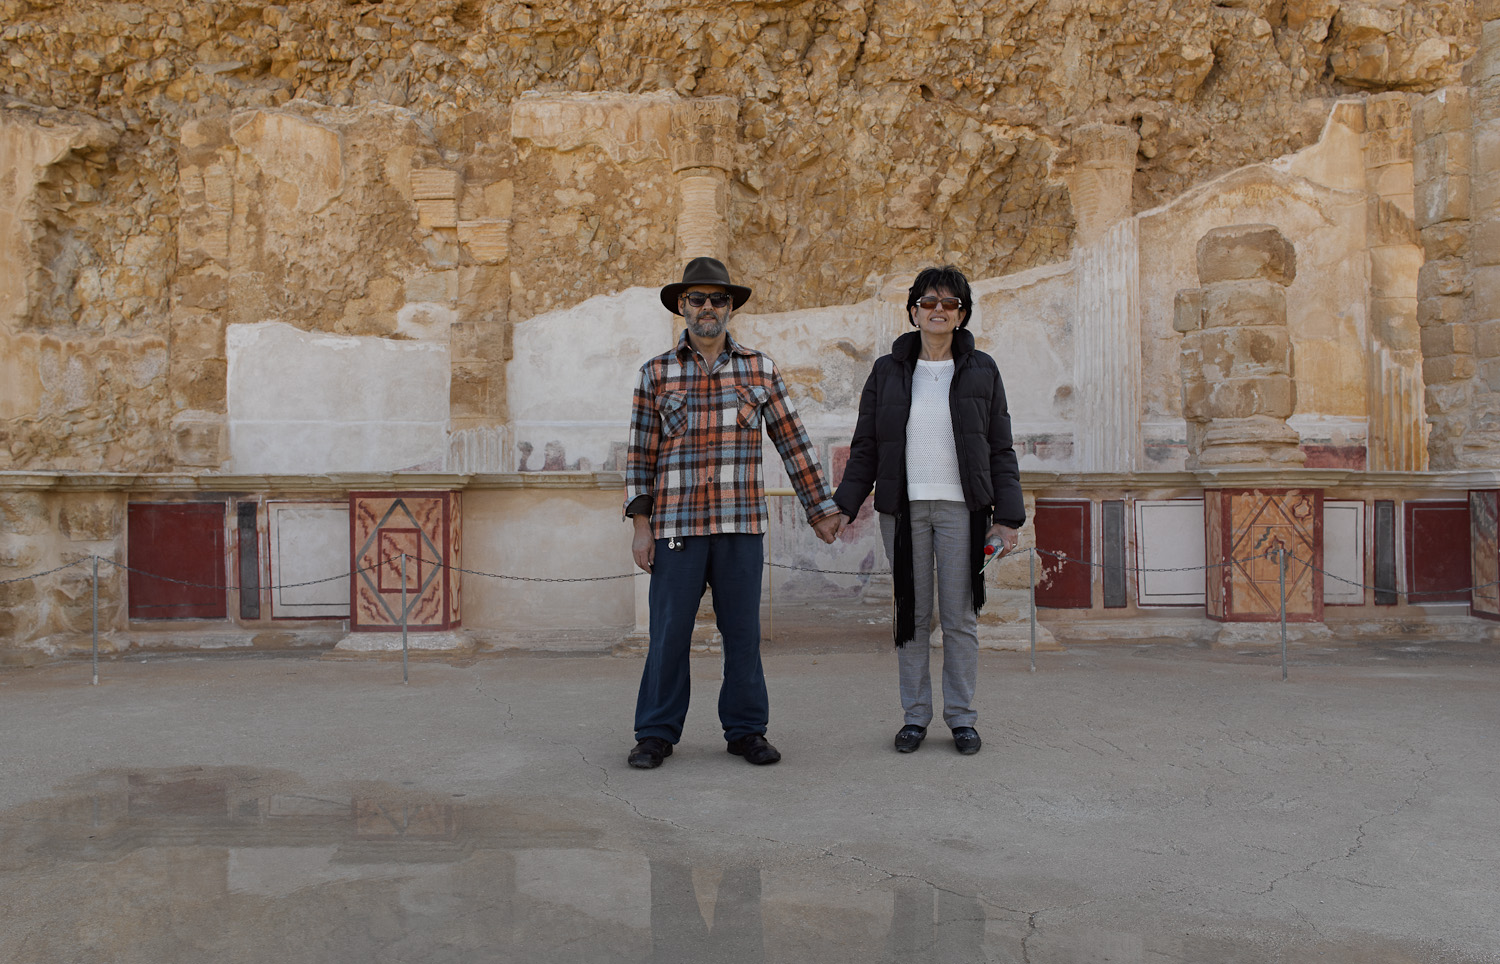 Fanny and myself - Masada, 2013